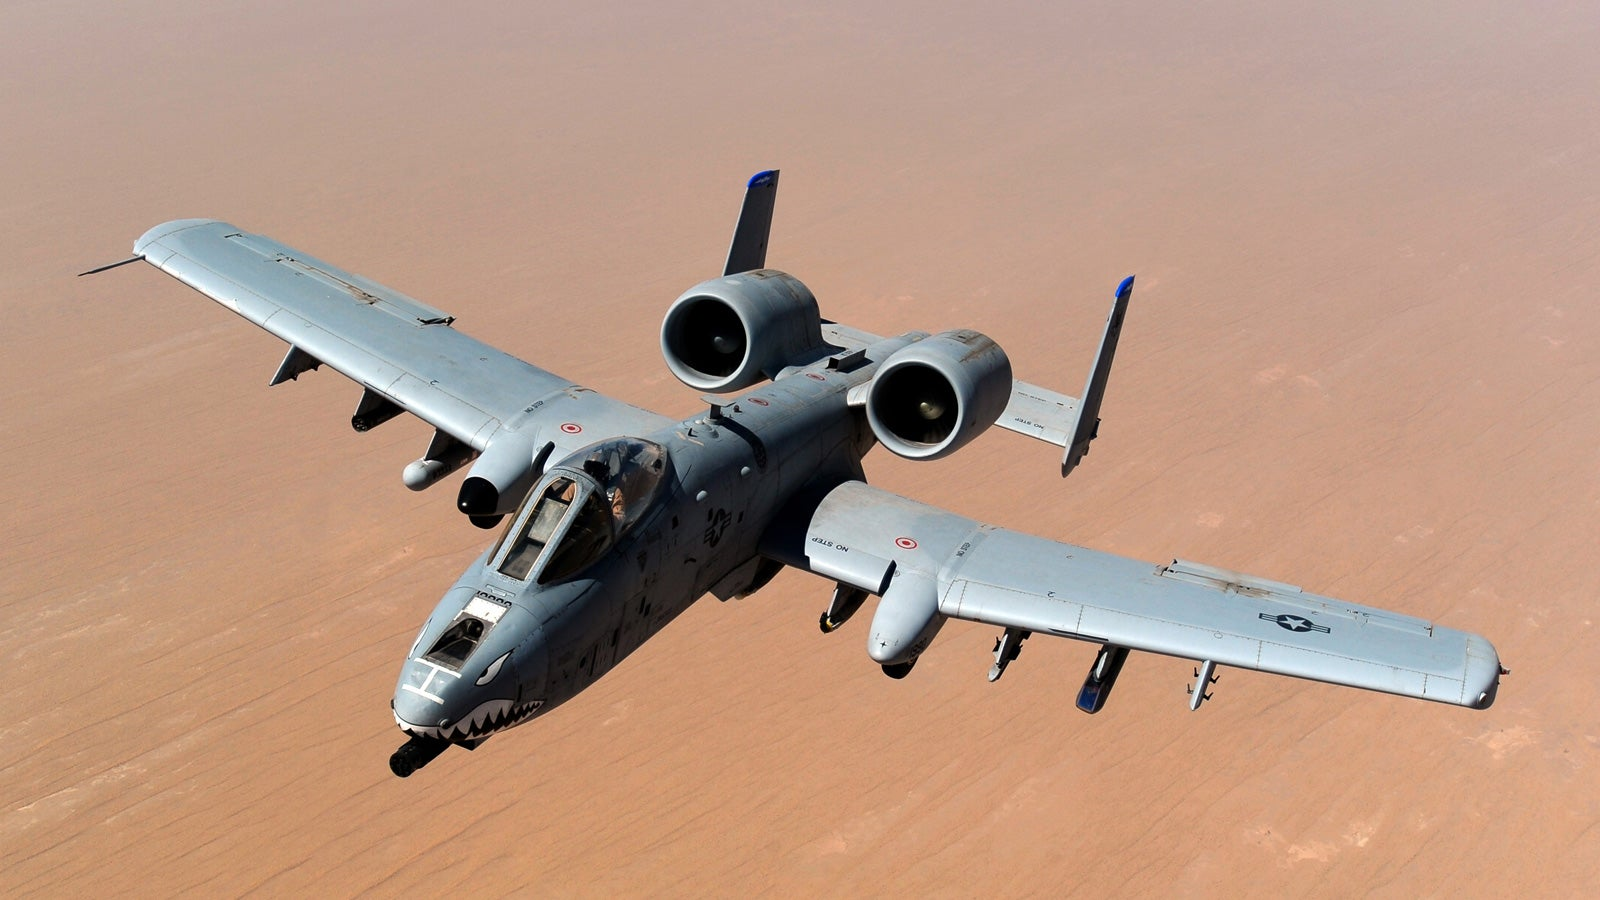 The A-10 Thunderbolt is scary beautiful